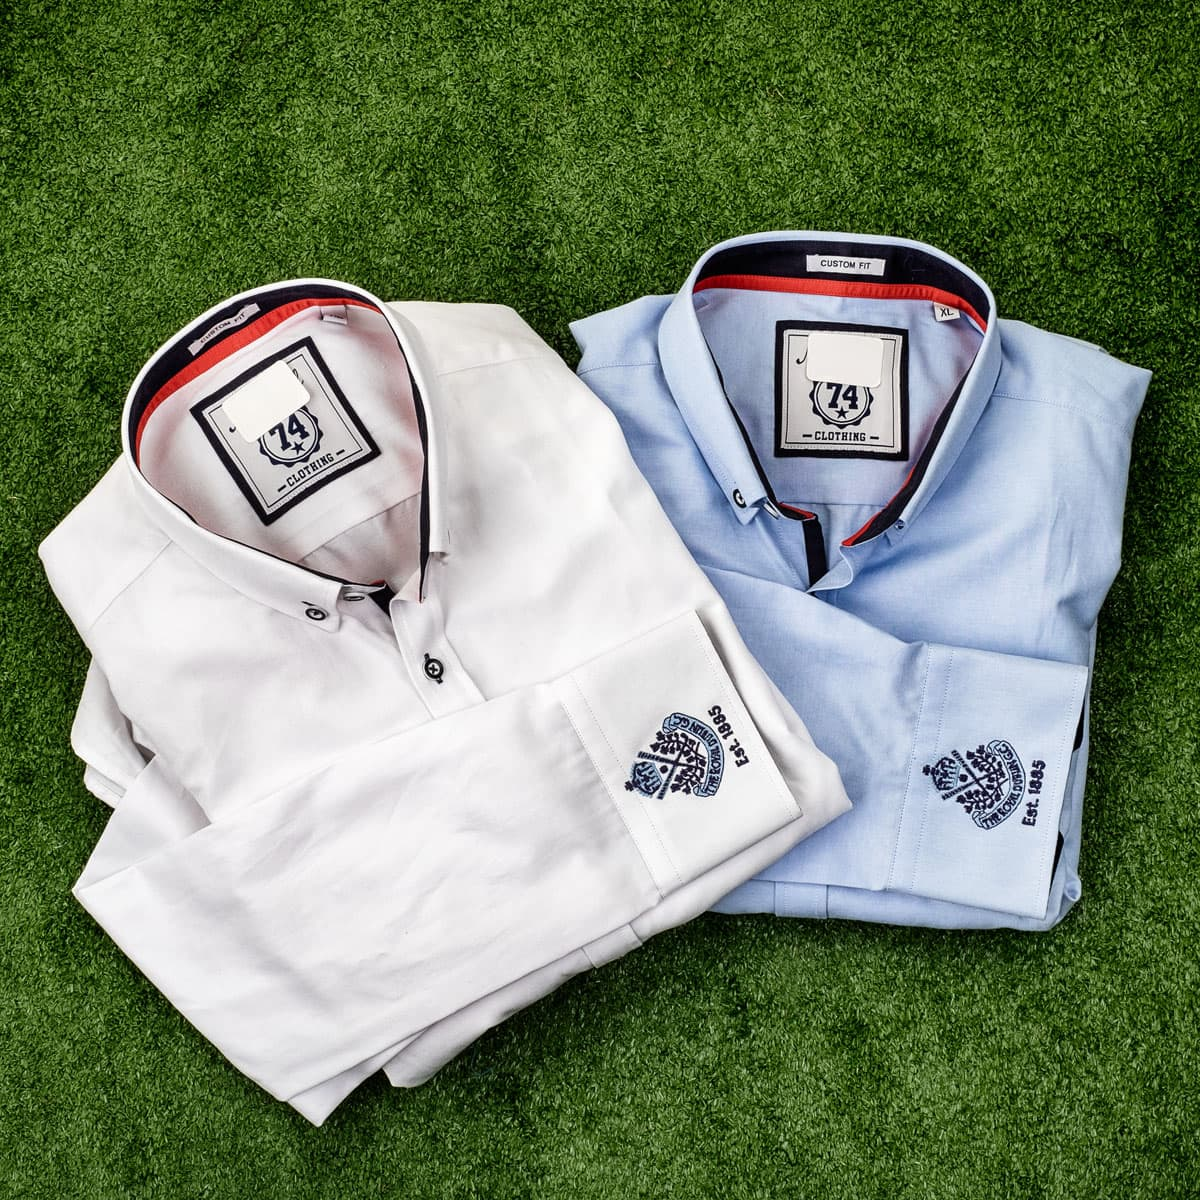 Casual shirt with crest on cuff - €59.95